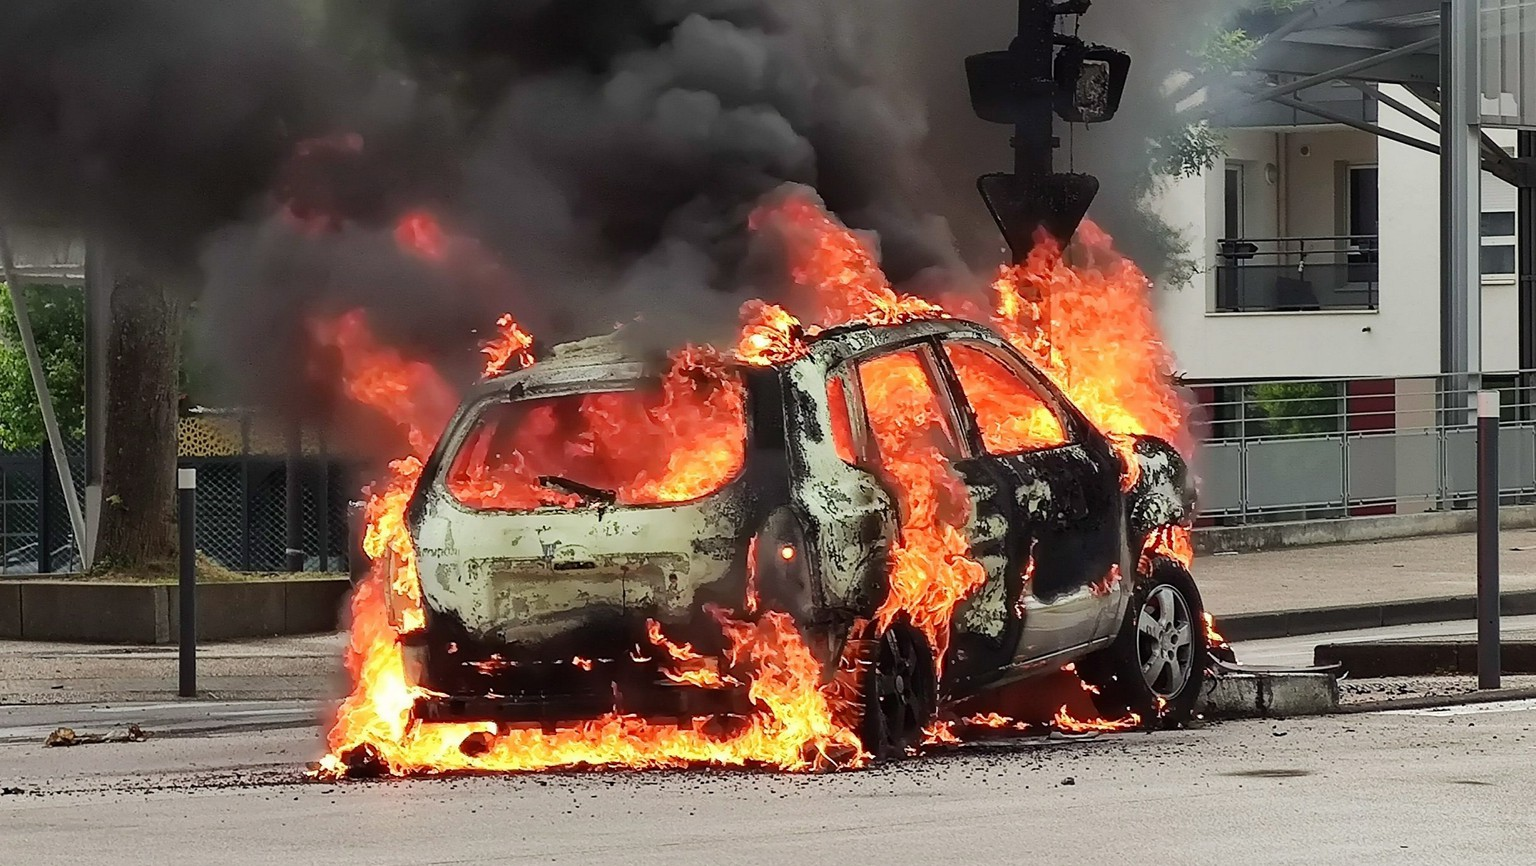 epa08487978 A  car burns after scenes of violence in the Gresilles neighborhood in Dijon, France, 15 June 2020 (issued 16 June 2020). Members of the Chechen community gathered in Dijon to avenge one of their family, who was allegedly beaten last week.  EPA/VINCENT LINDENEHER  FRANCE OUT / SHUTTERSTOCK OUT